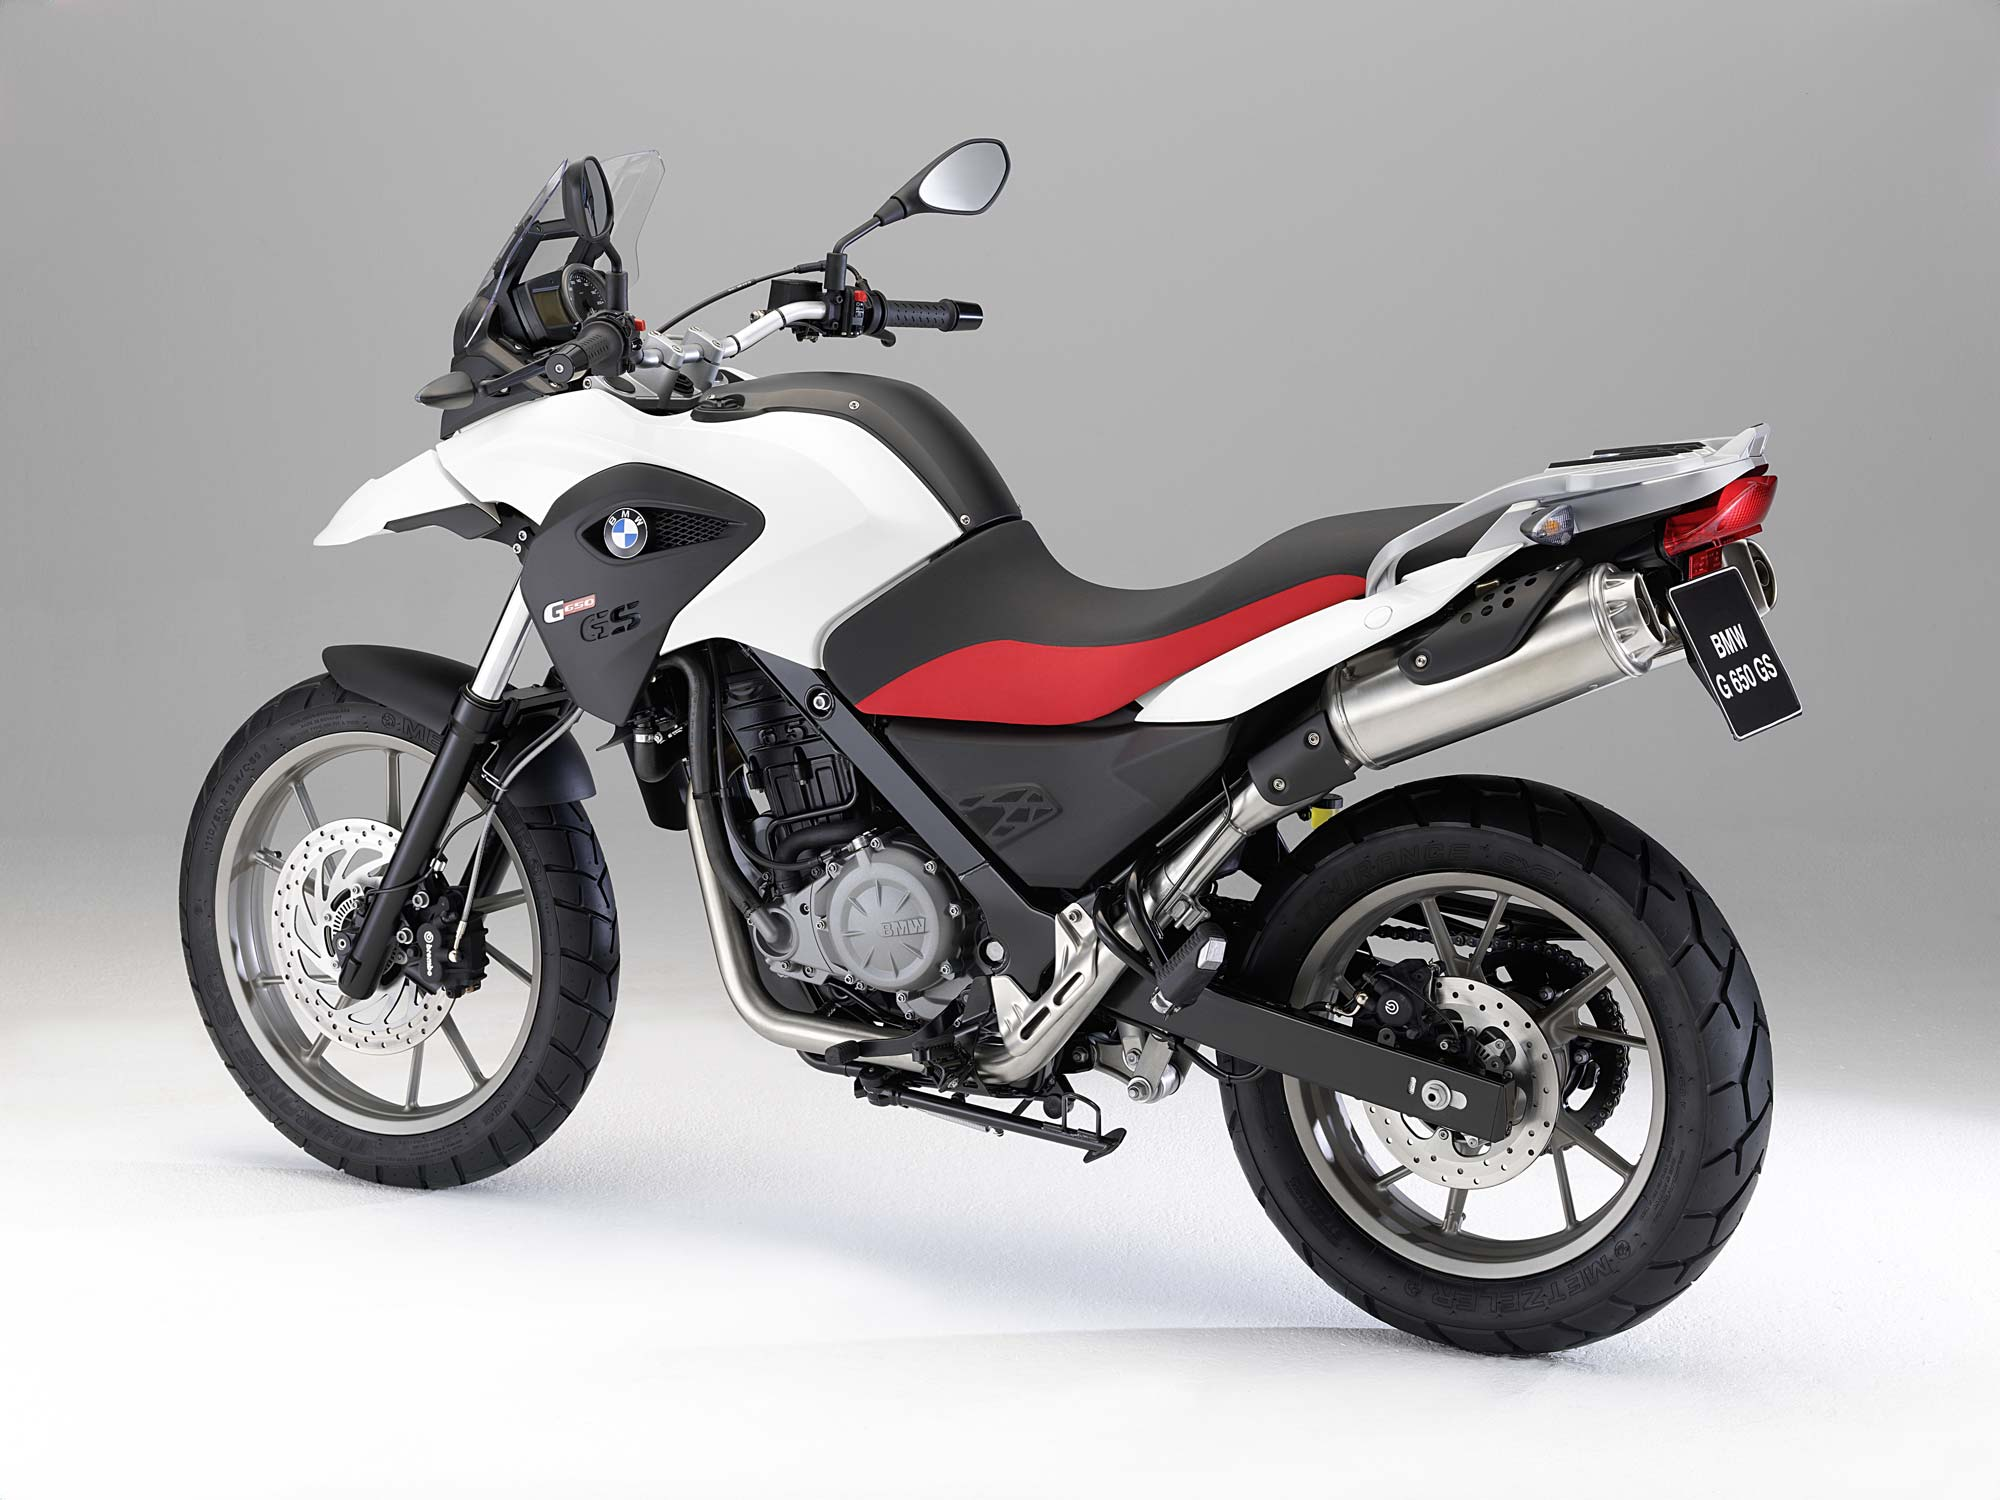 2011 BMW G650GS - A Face Only a Mother Could Love - Asphalt & Rubber